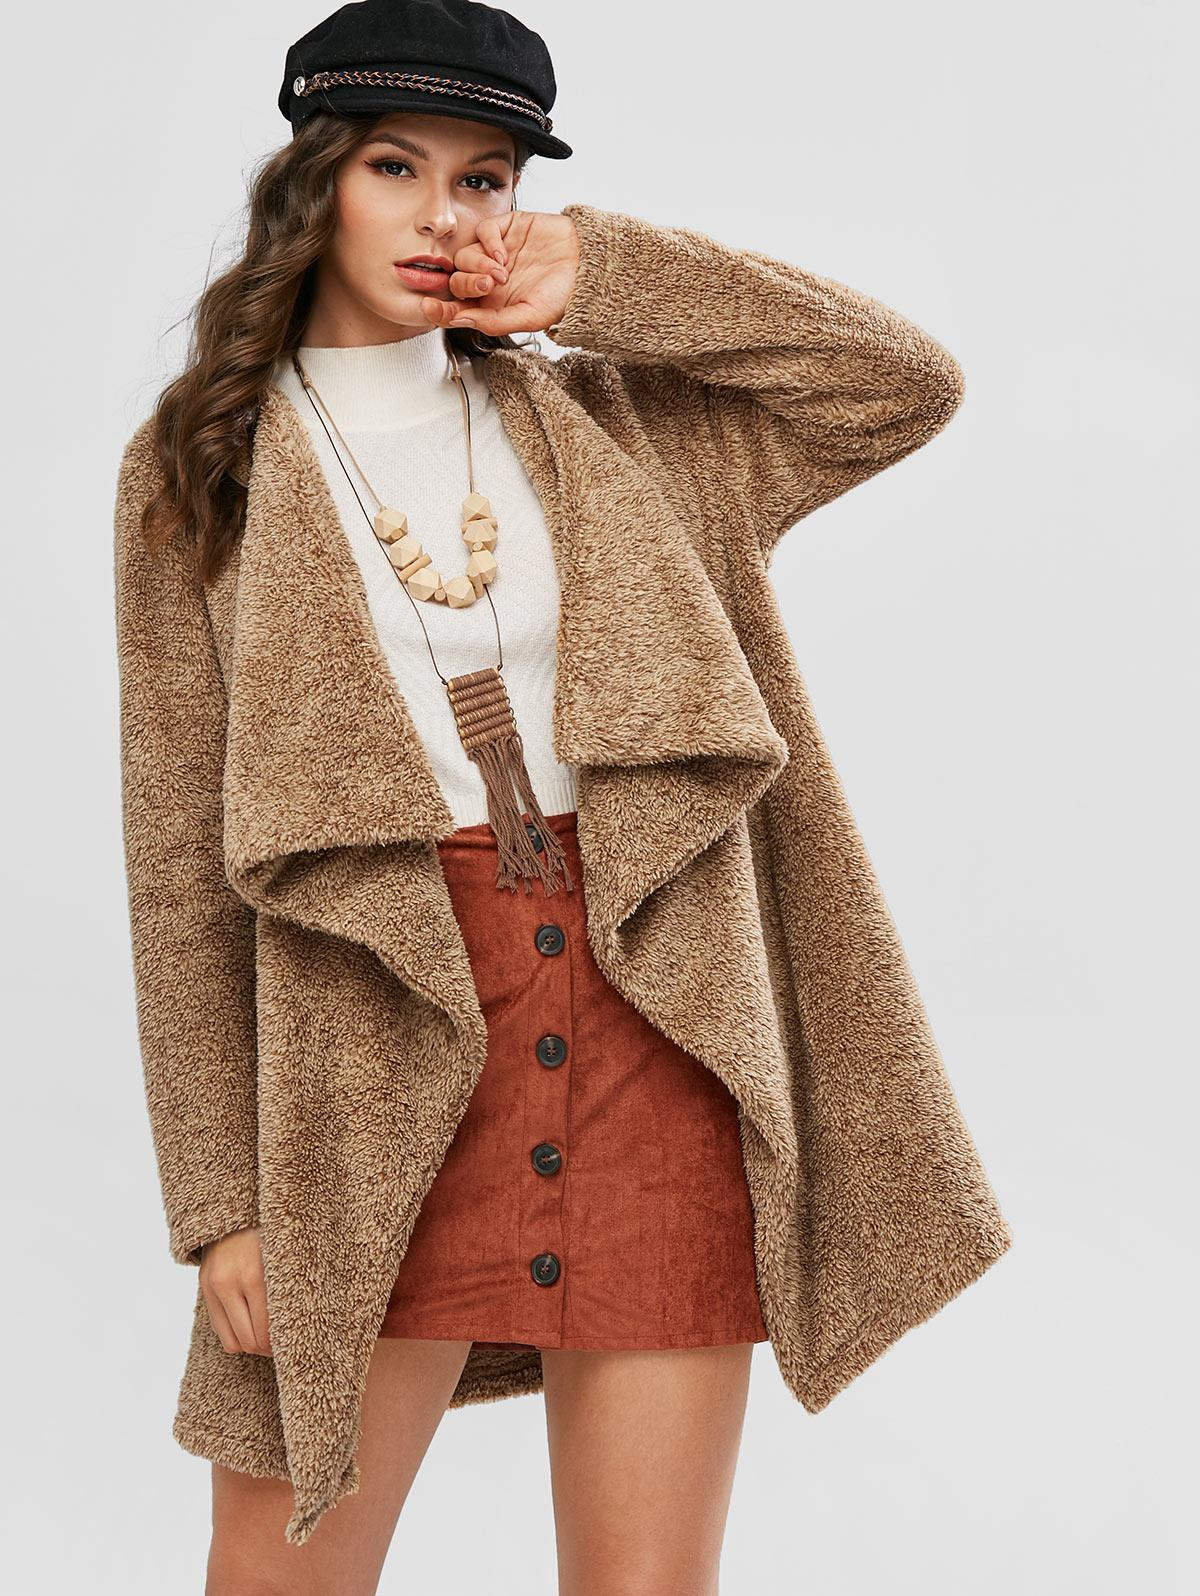 ZAFUL Open Front Waterfall Fluffy Tunic Coat